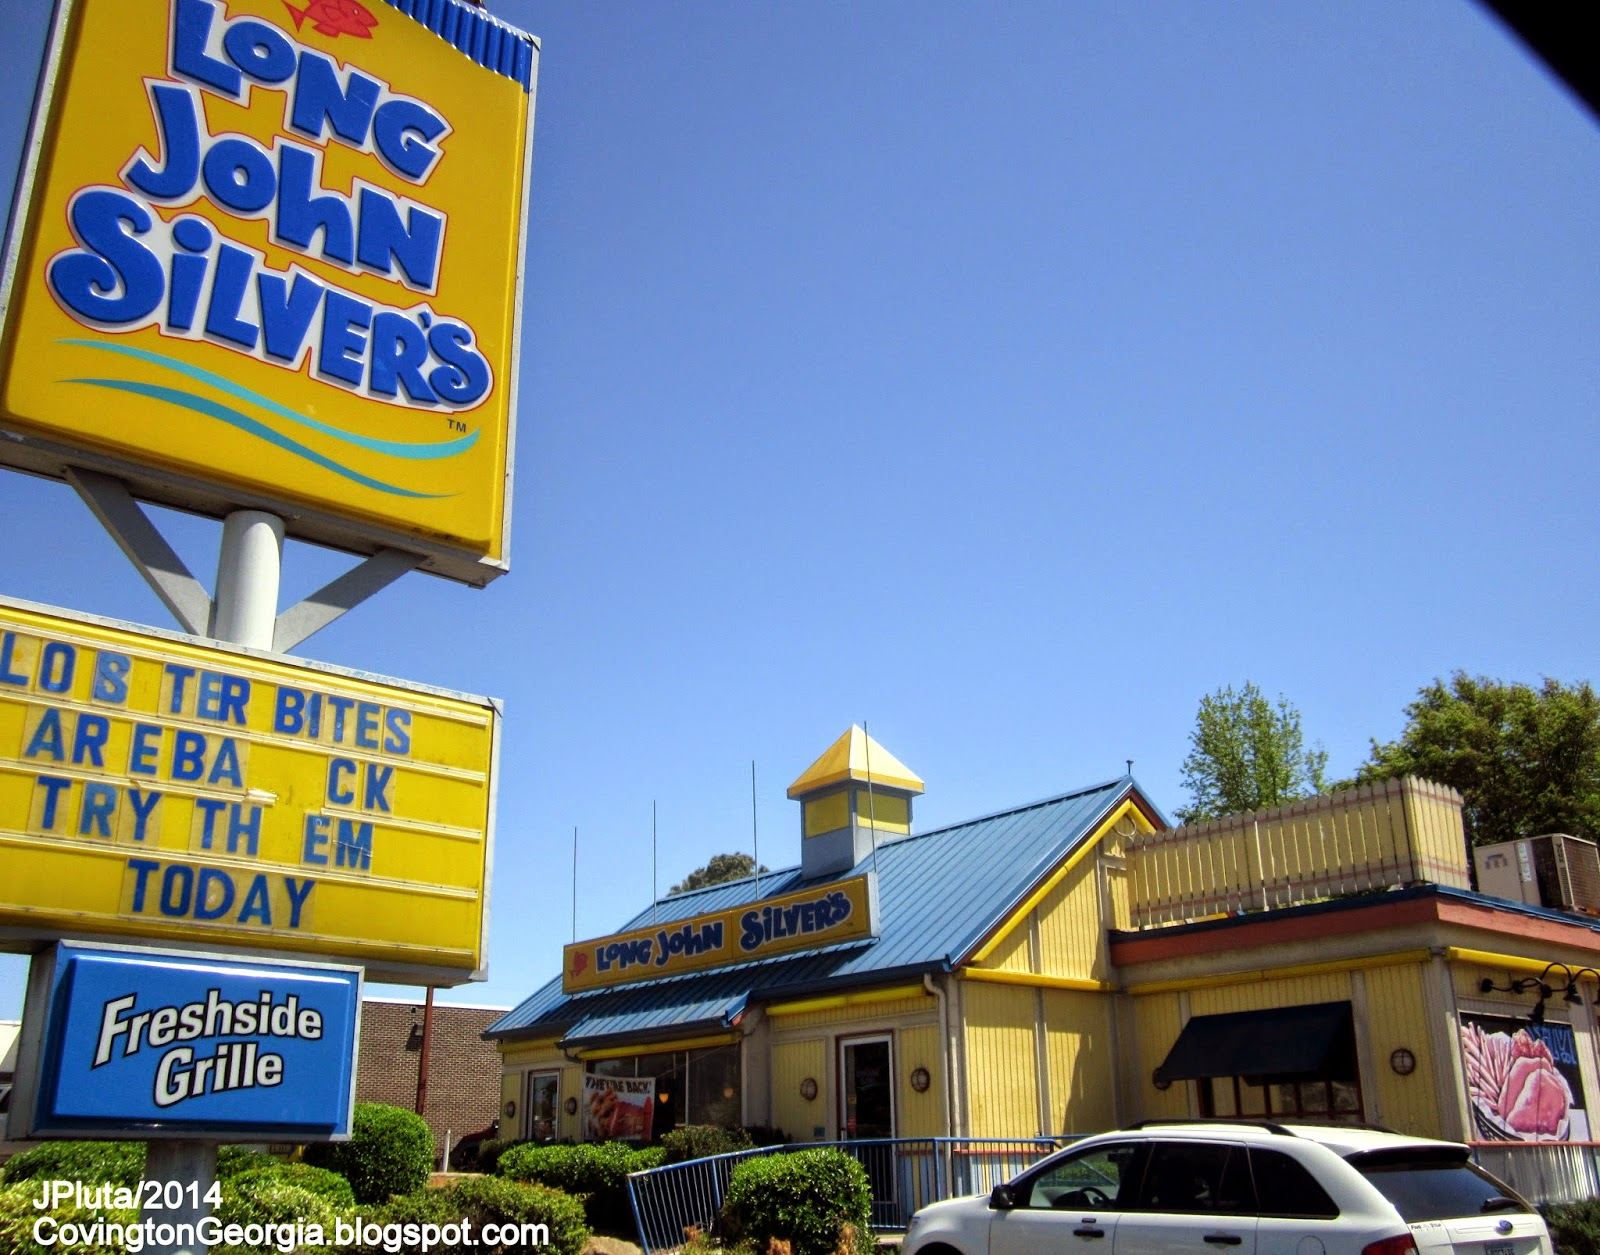 Find 13 listings related to Long John Silvers in Mcdonough on goodfilezbv.cf See reviews, photos, directions, phone numbers and more for Long John Silvers locations in Mcdonough, GA. Start your search by typing in the business name below.